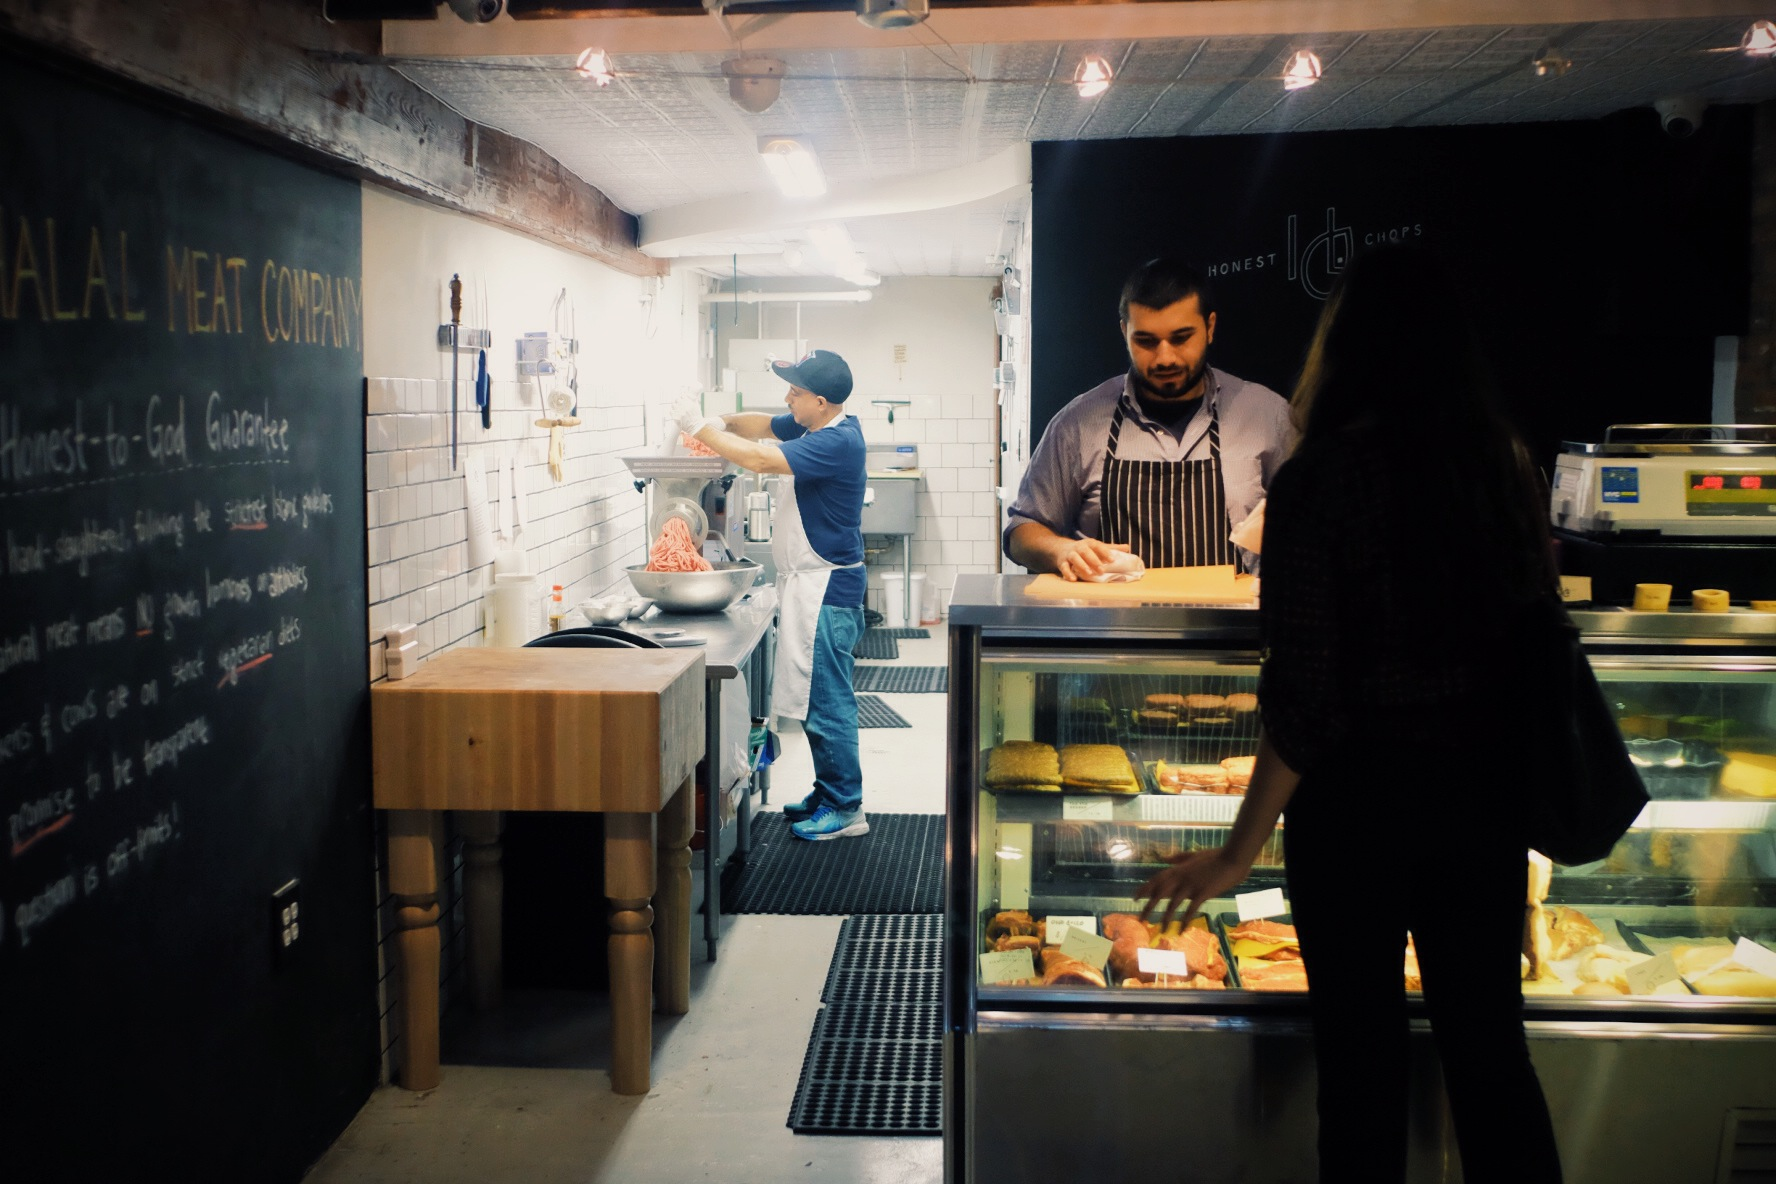 """Tariq opened Honest Chops Halal butcher store in the heart of New York's East Village in Manhattan. Their mission: """"Here to change the world's relationship to their food."""" Photo: Omar Mullick/Honest Chops"""